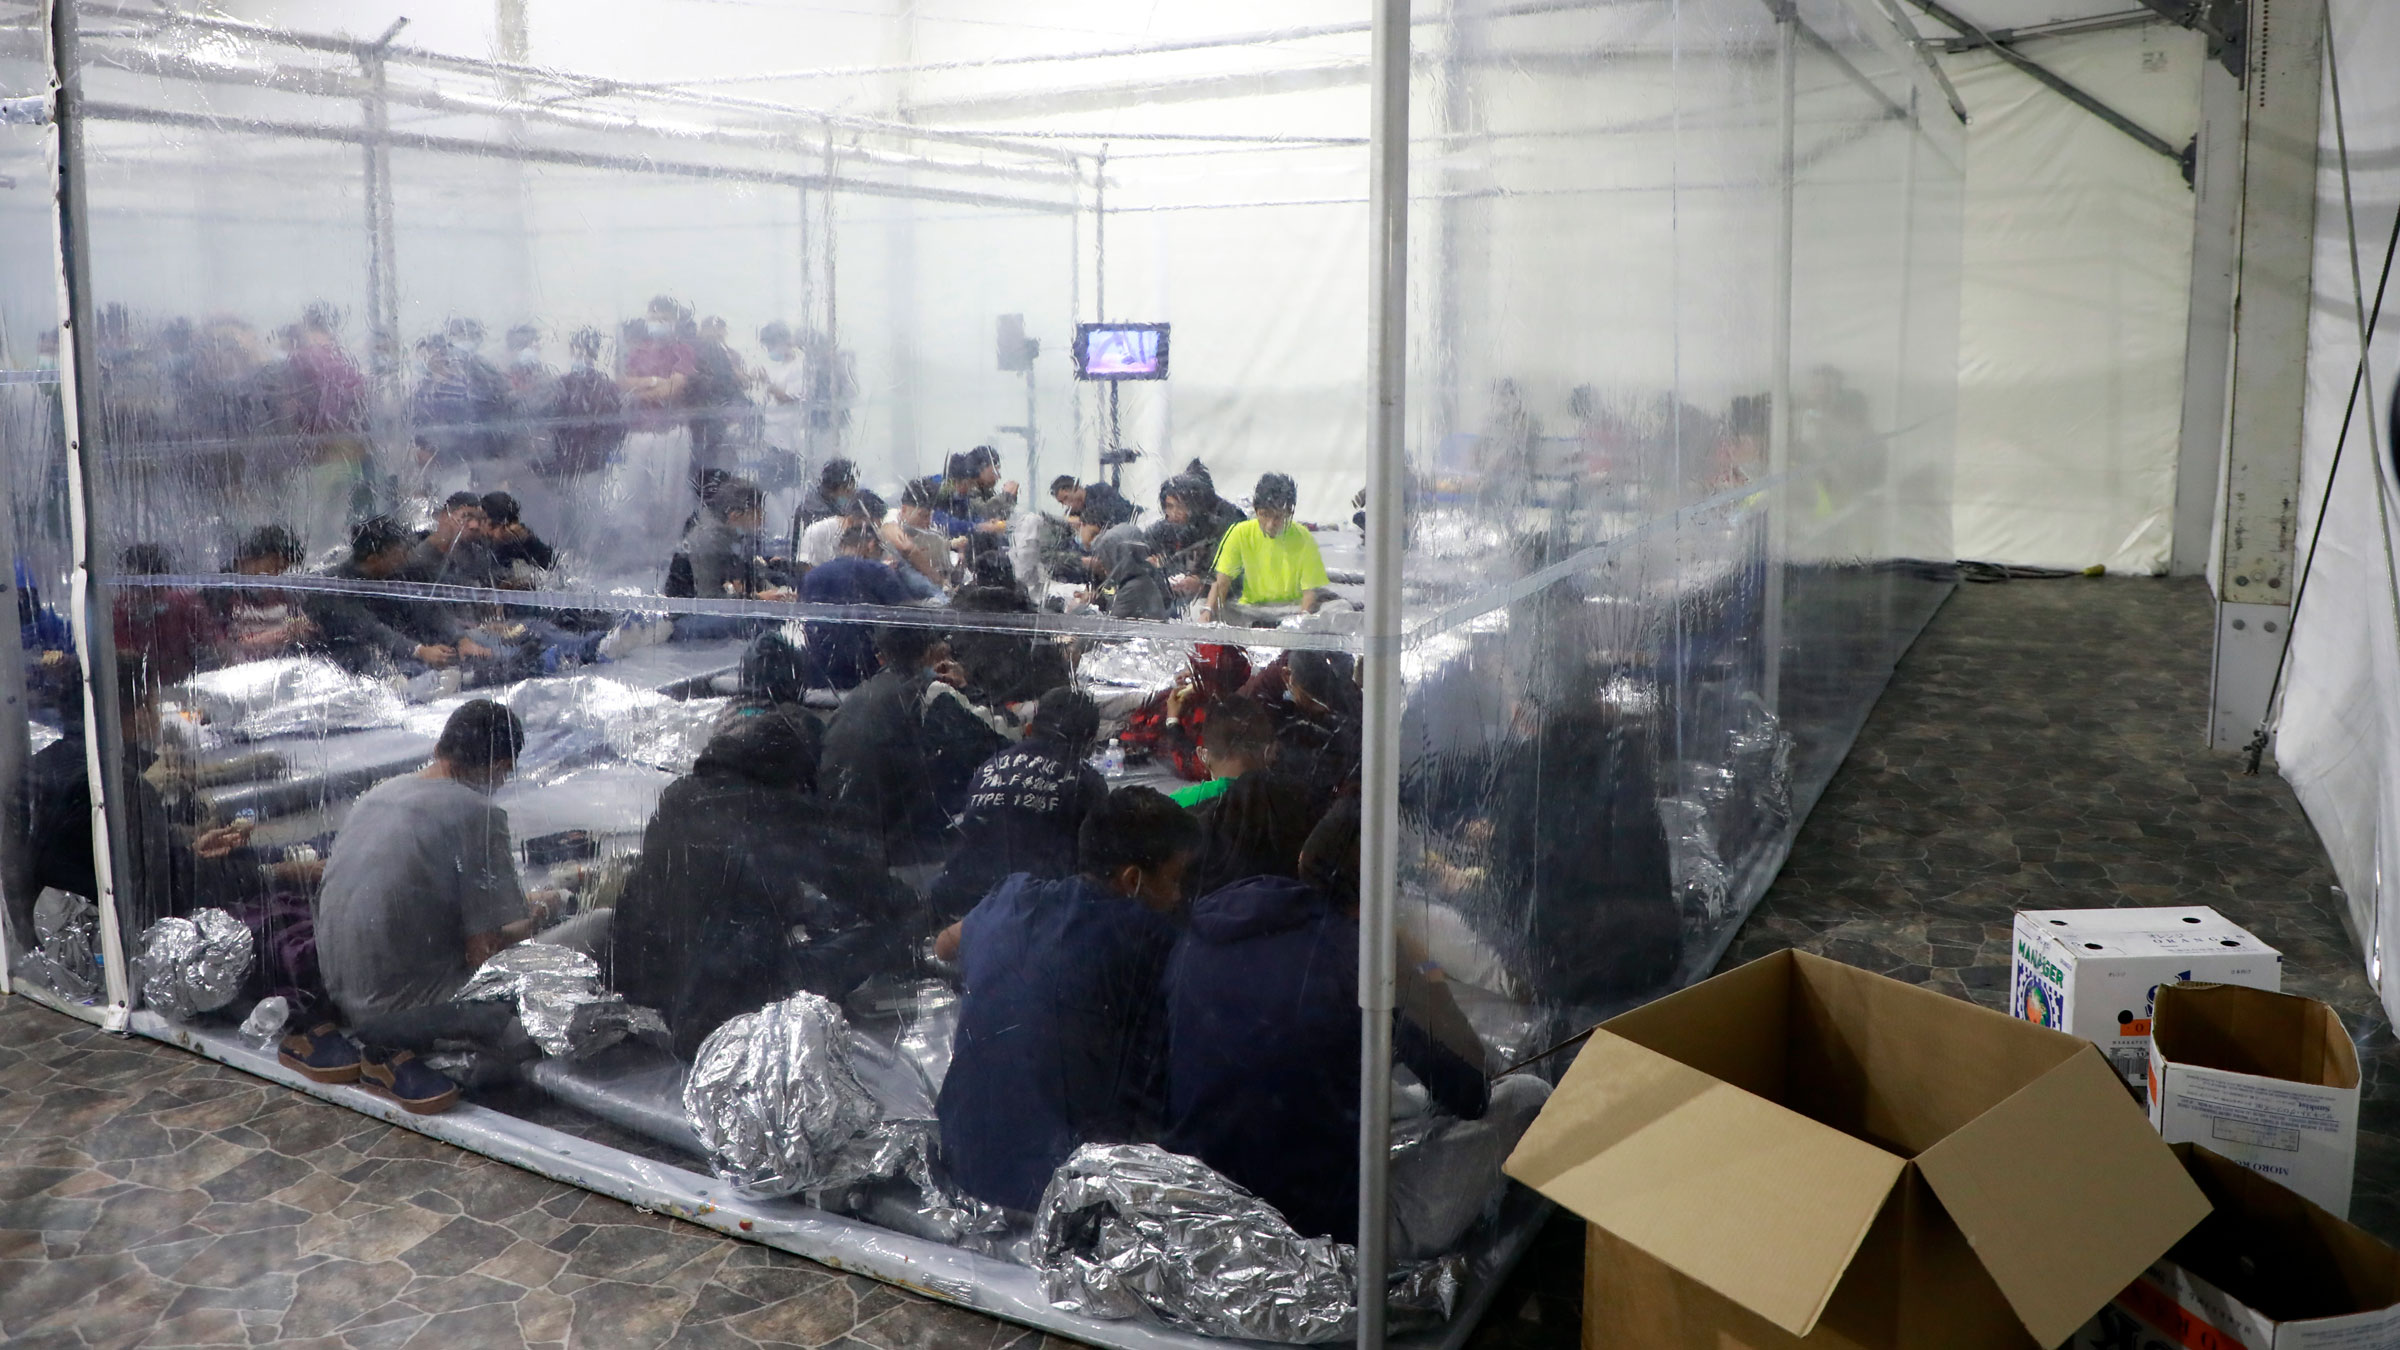 Migrants are detained at a temporary processing facility in Donna, Texas, in March.